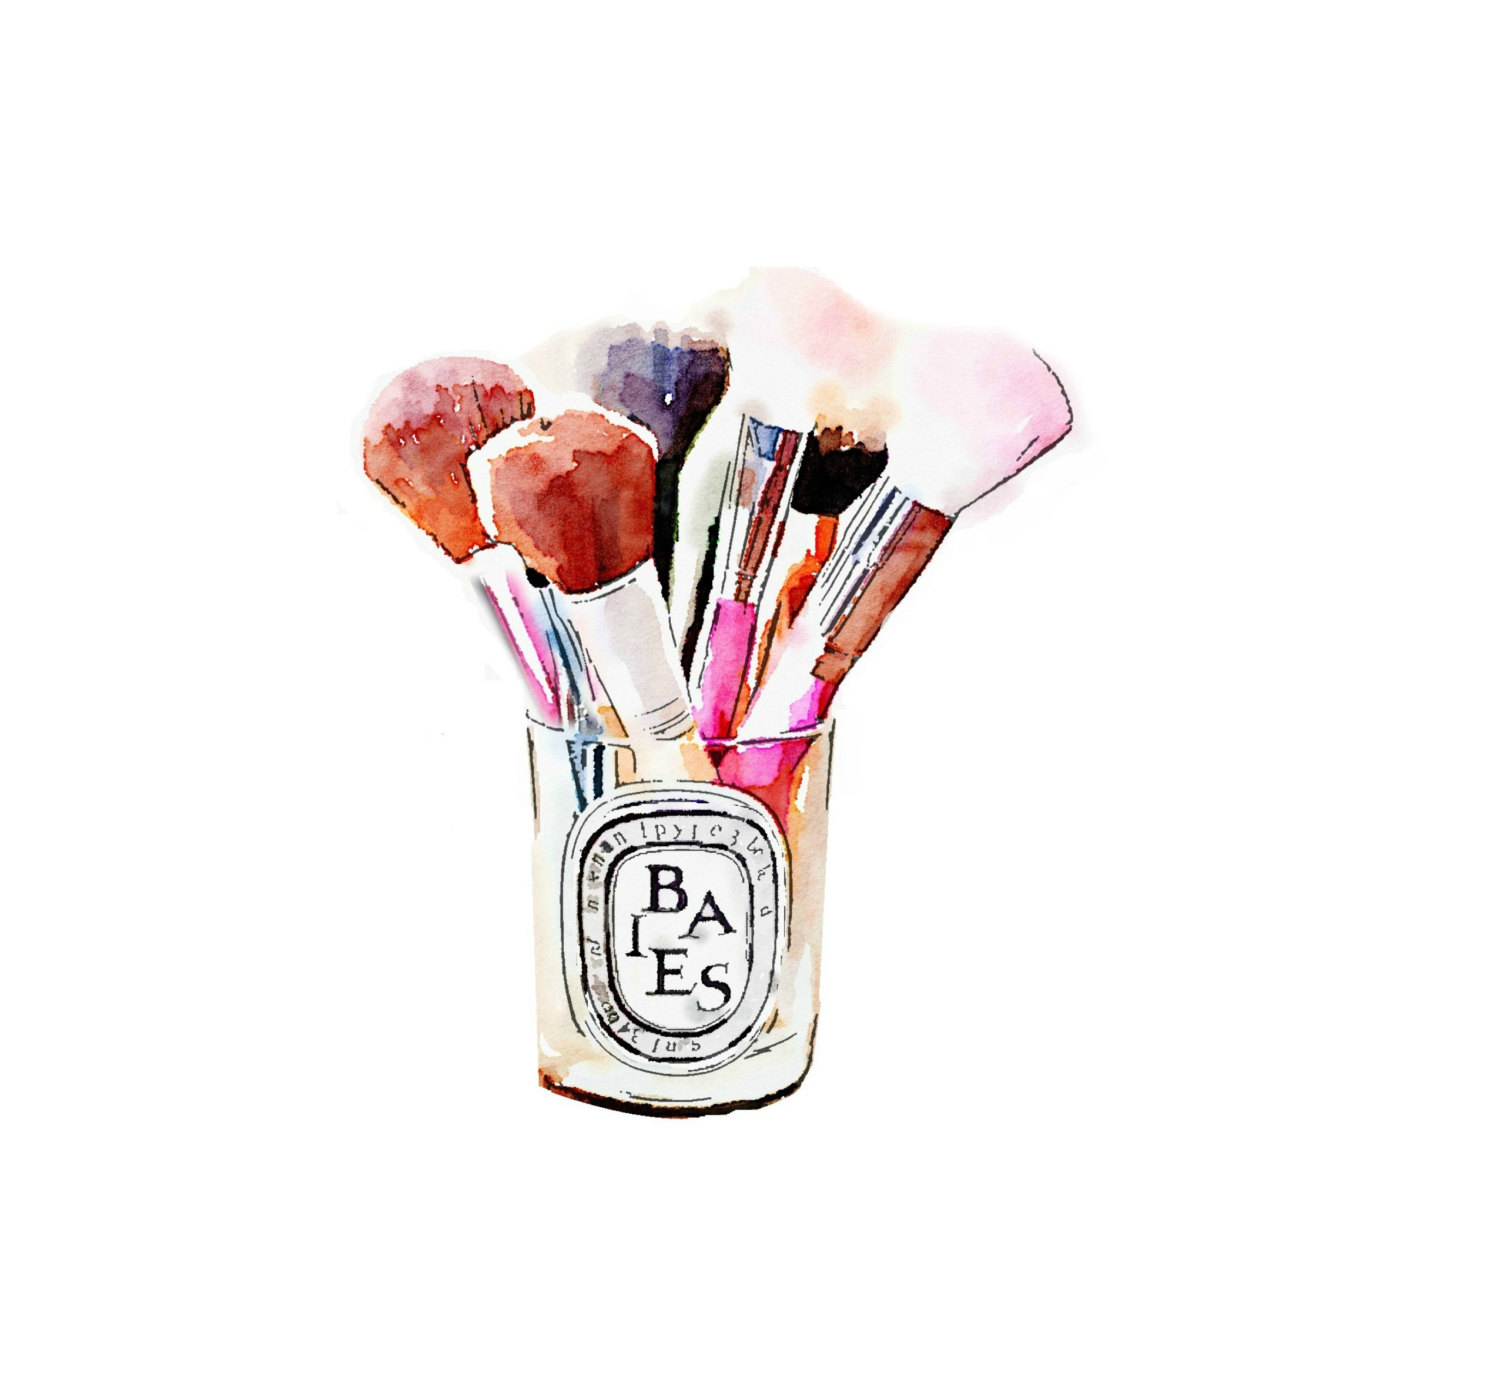 1500x1387 Diptyque Candle Makeup Brush Holder Print From By Lascandal